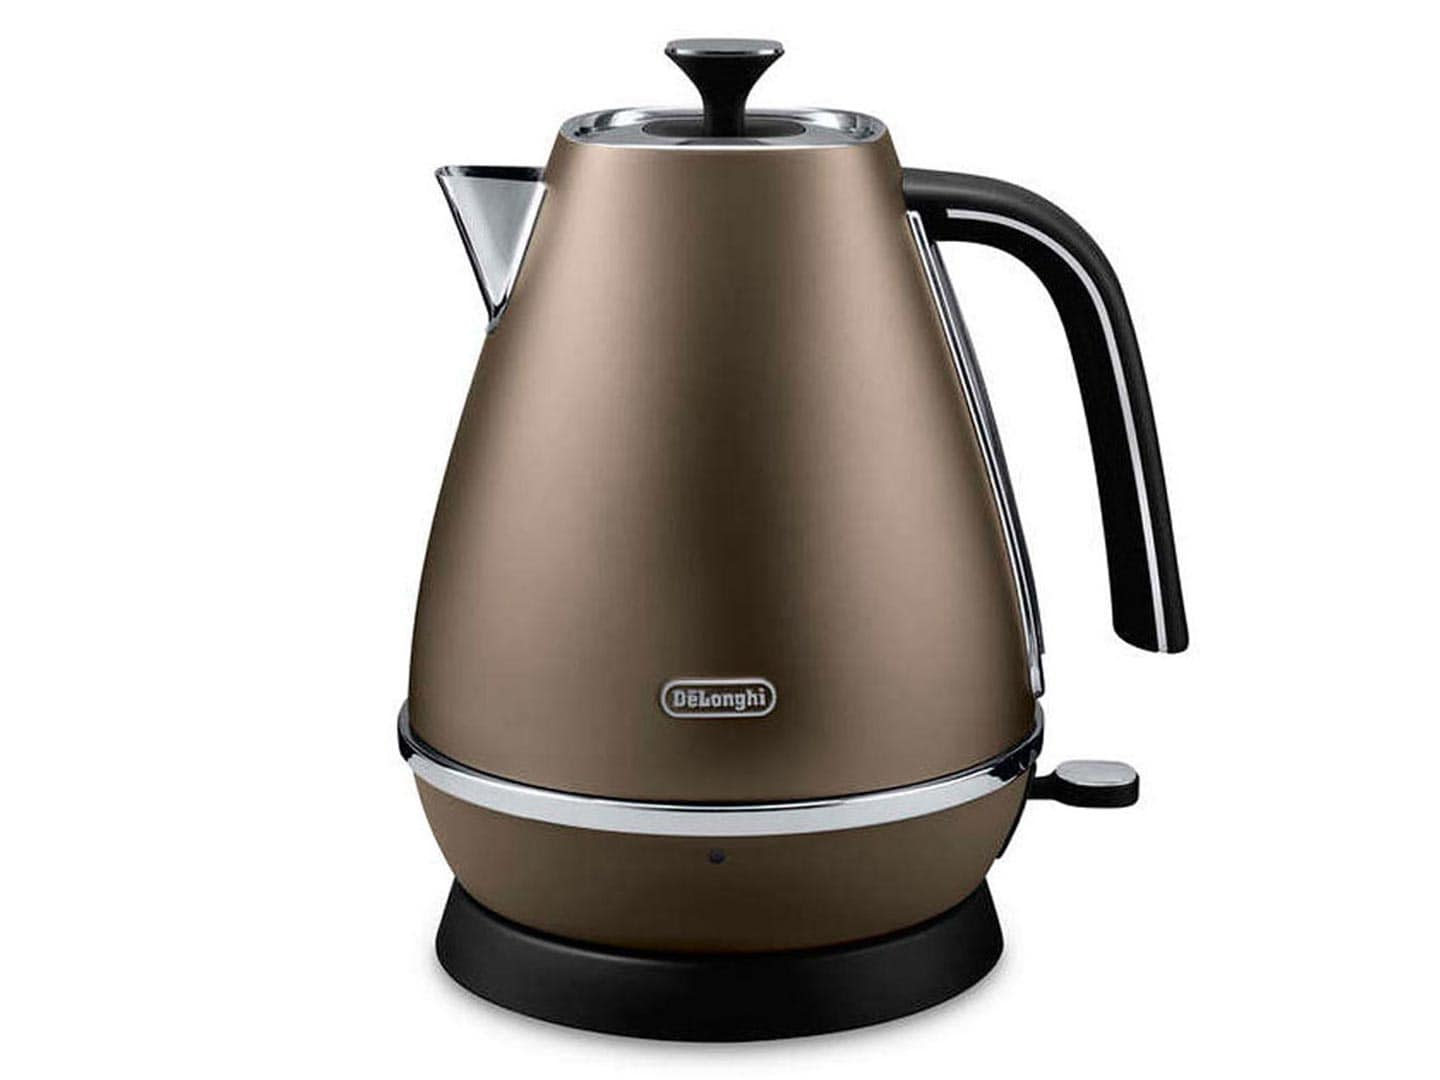 Uncategorized Delonghi Kitchen Appliances kettles kitchen appliances delonghi new zealand distinta kettle future bronze kbi 2001 bz